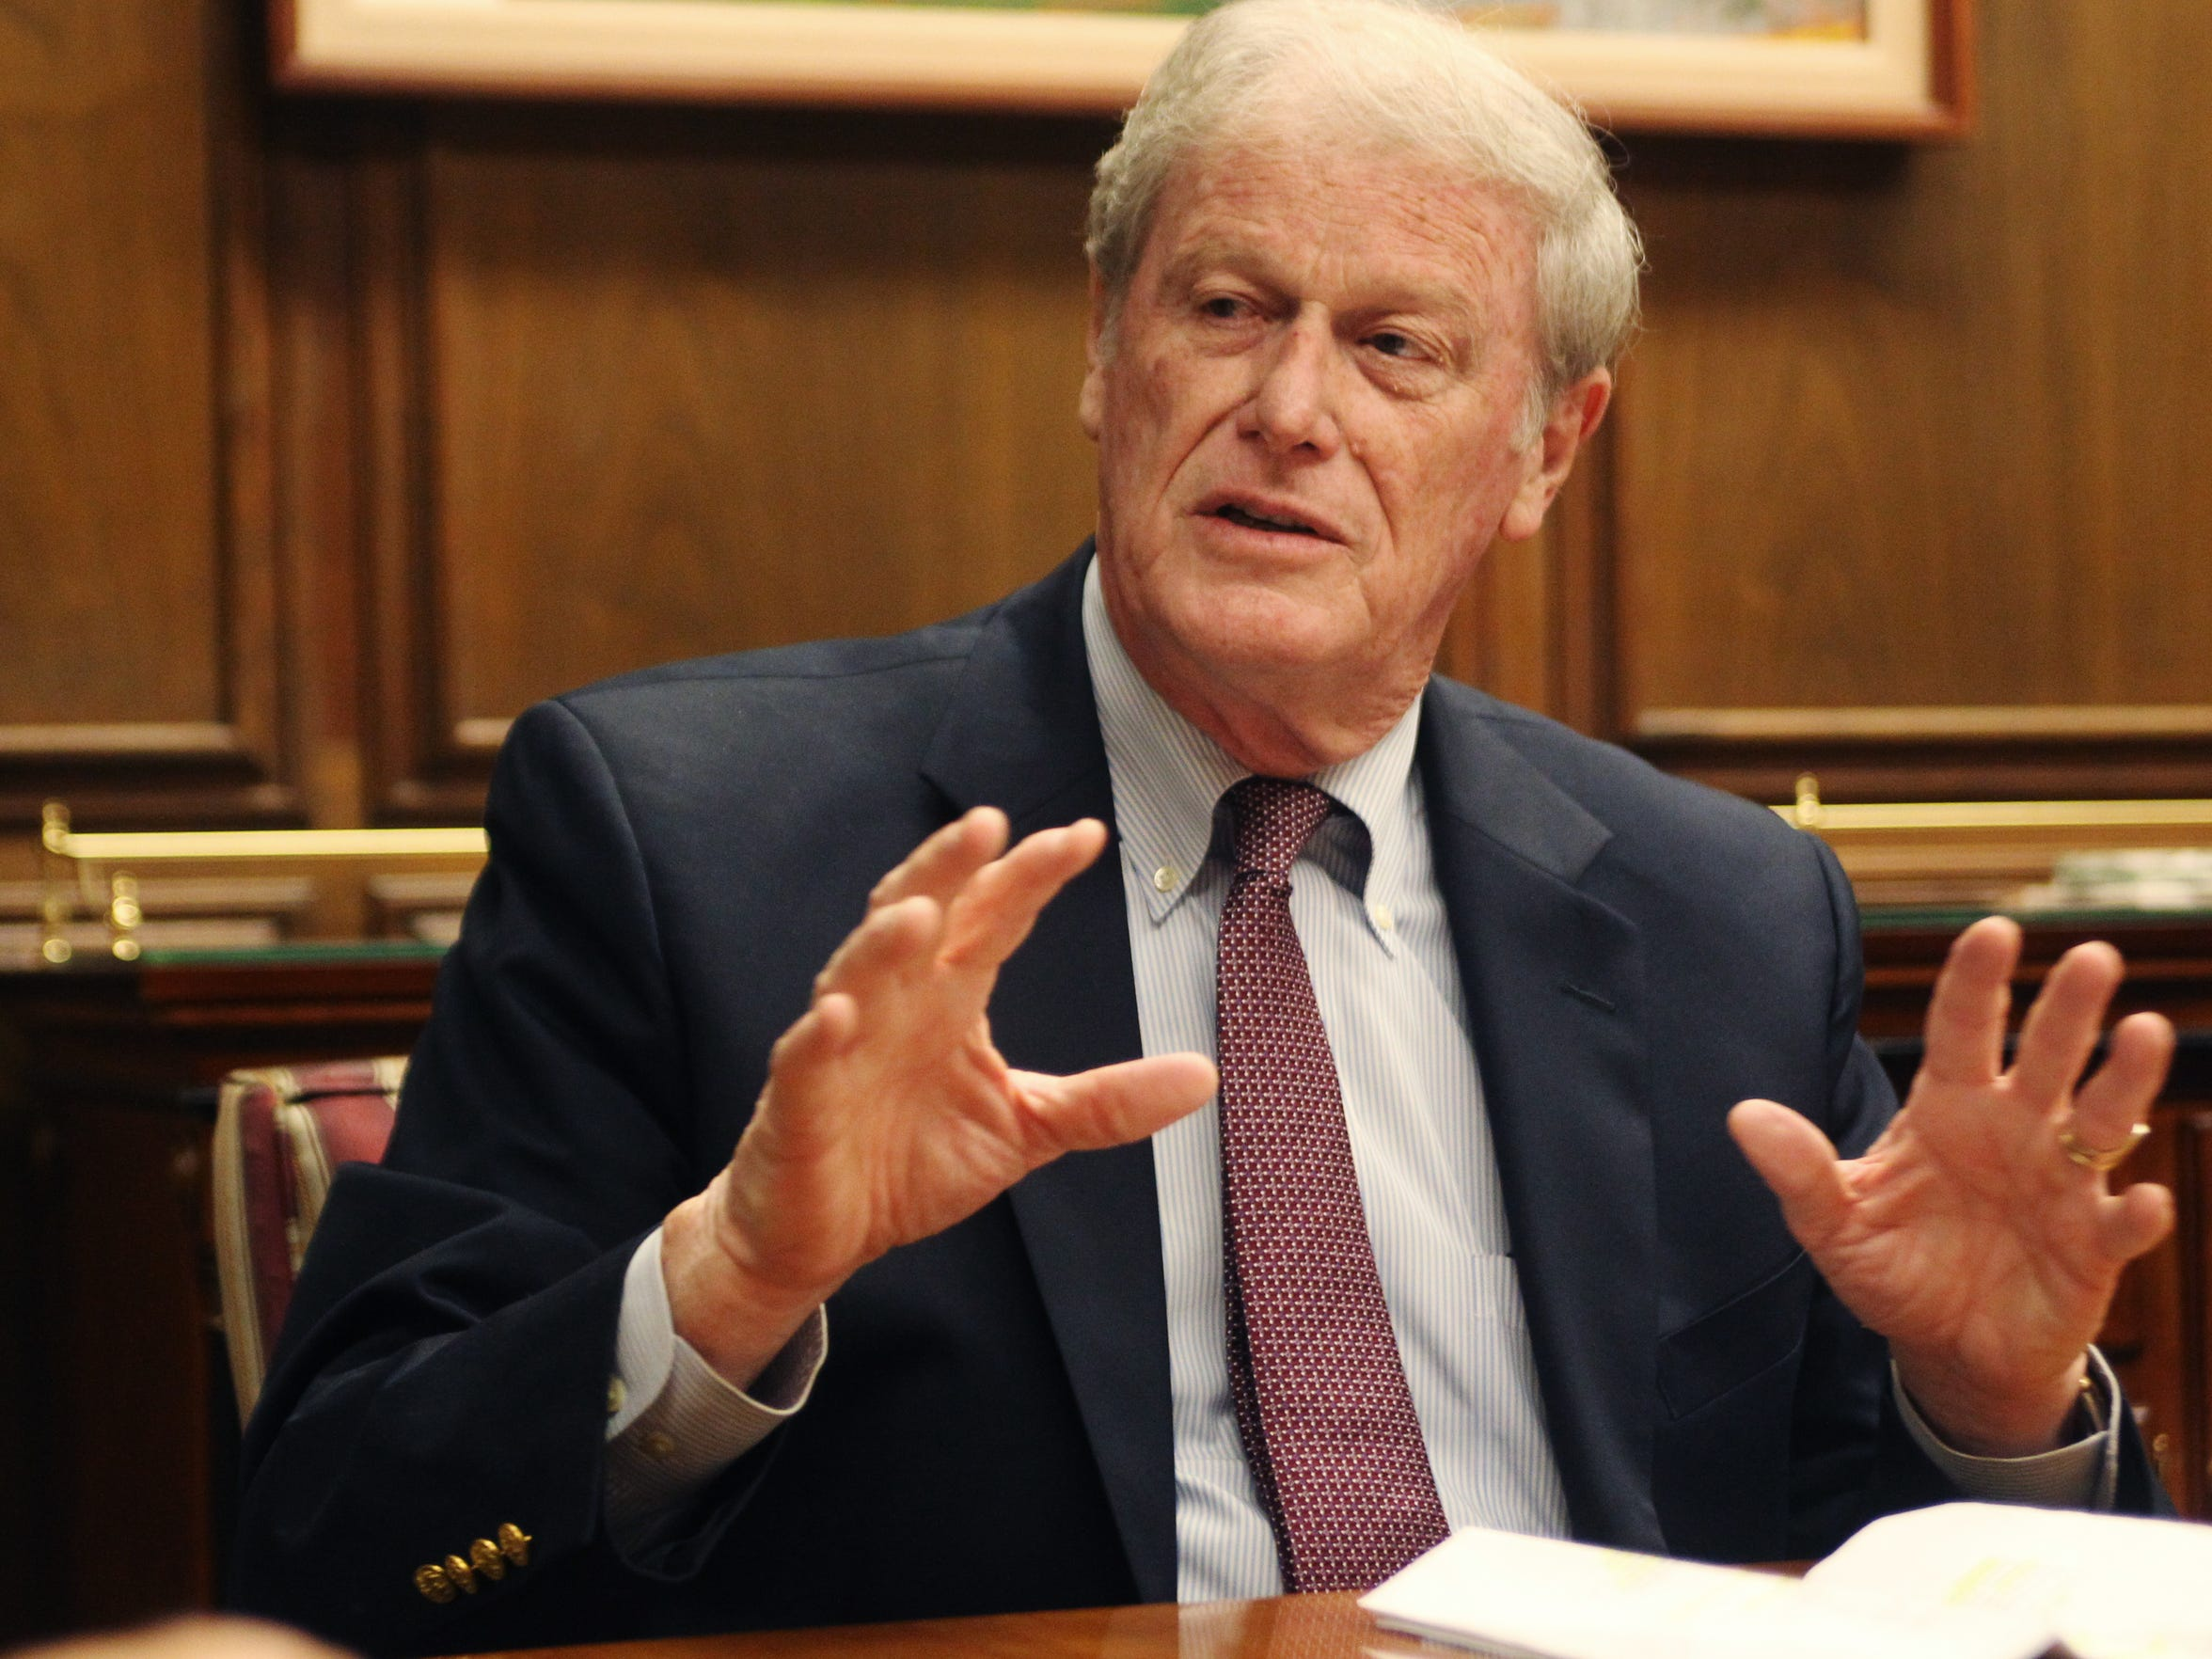 Florida State University President John Thrasher has made efforts to prevent hazing on campus.